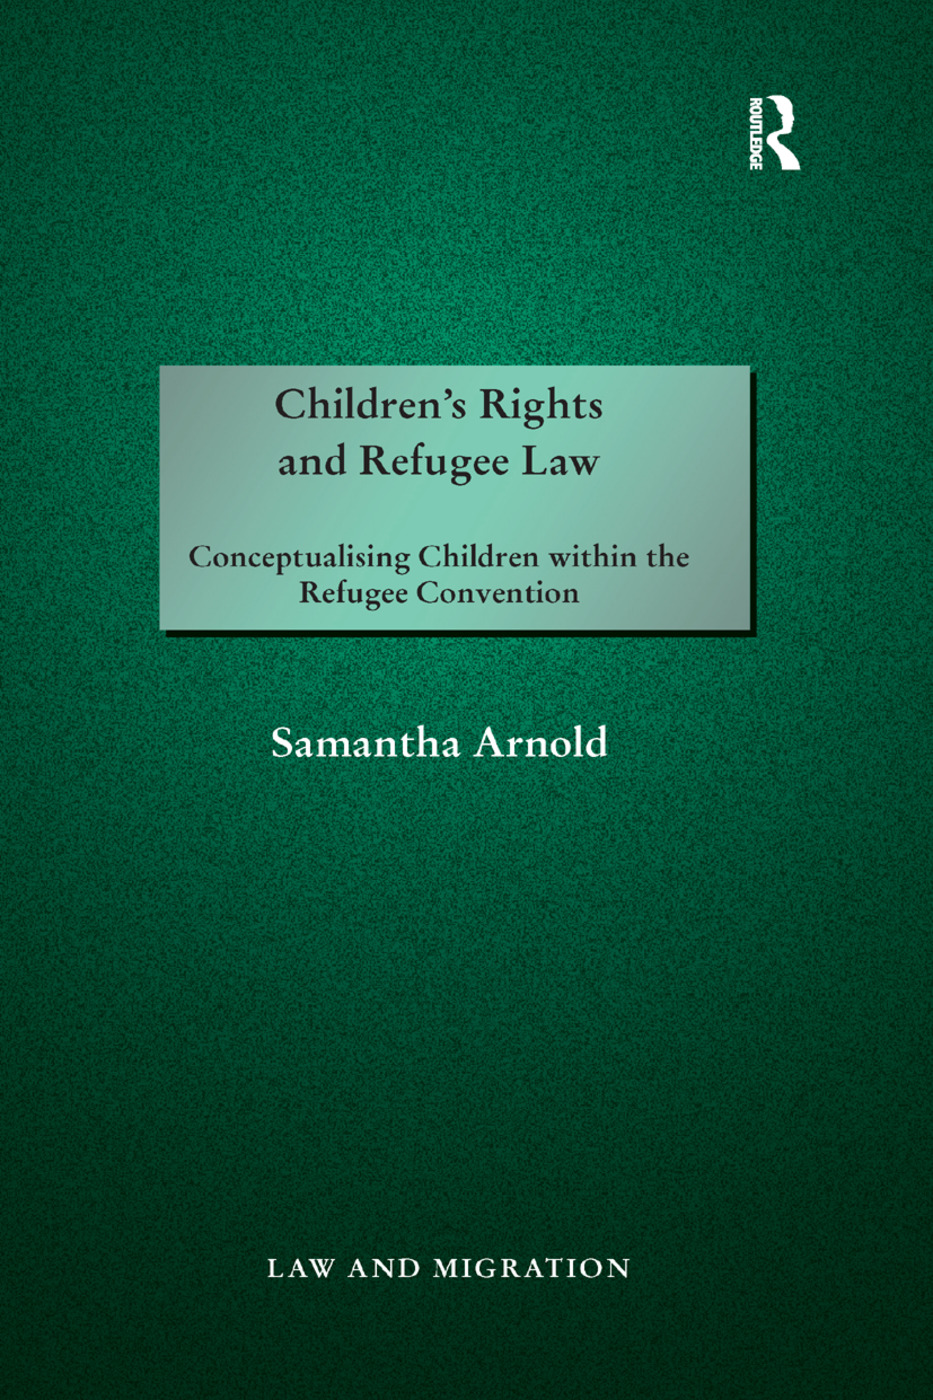 Children's Rights and Refugee Law: Conceptualising Children within the Refugee Convention book cover